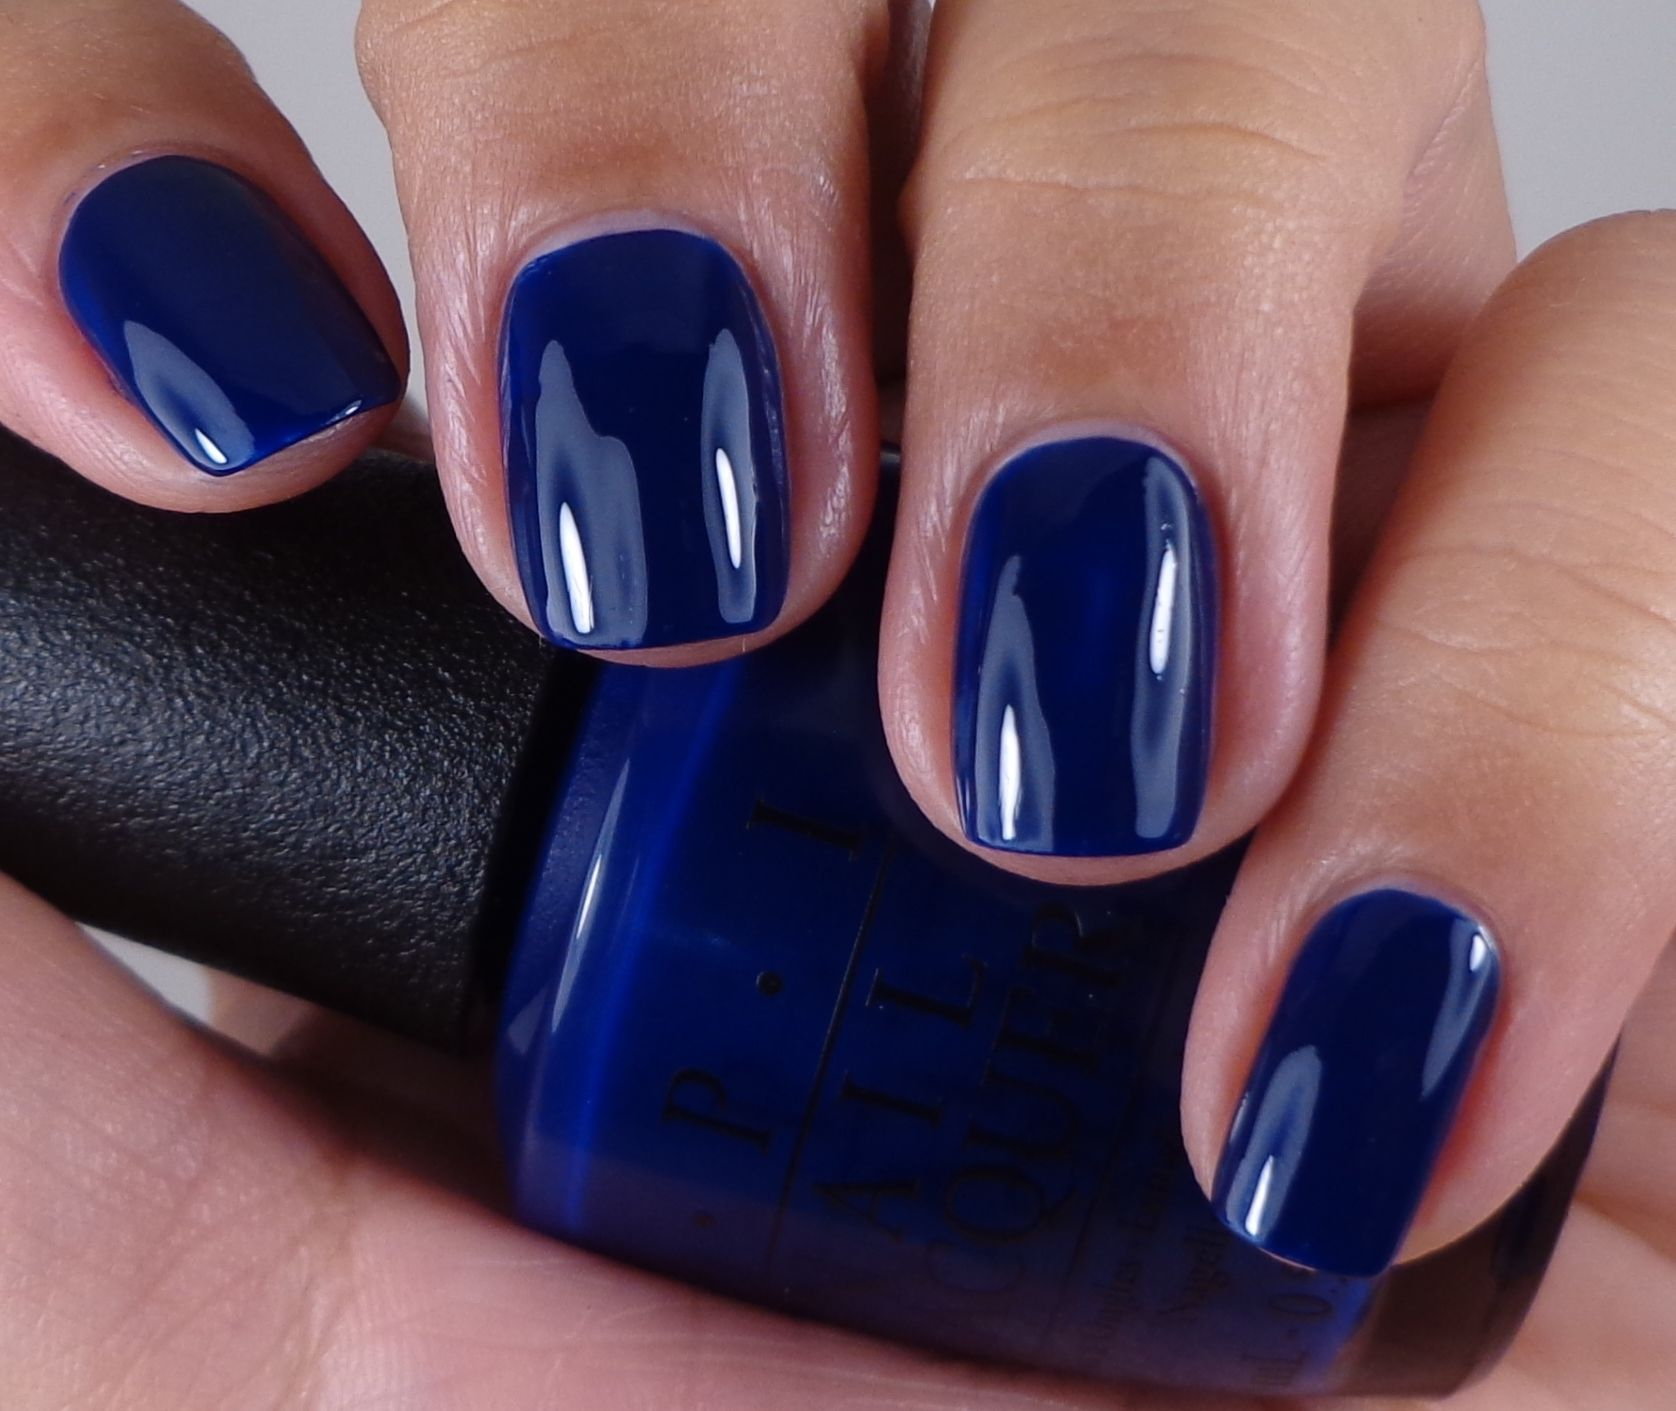 OPI Umpires Come Out at Night | my nail polish collection. | Pinterest